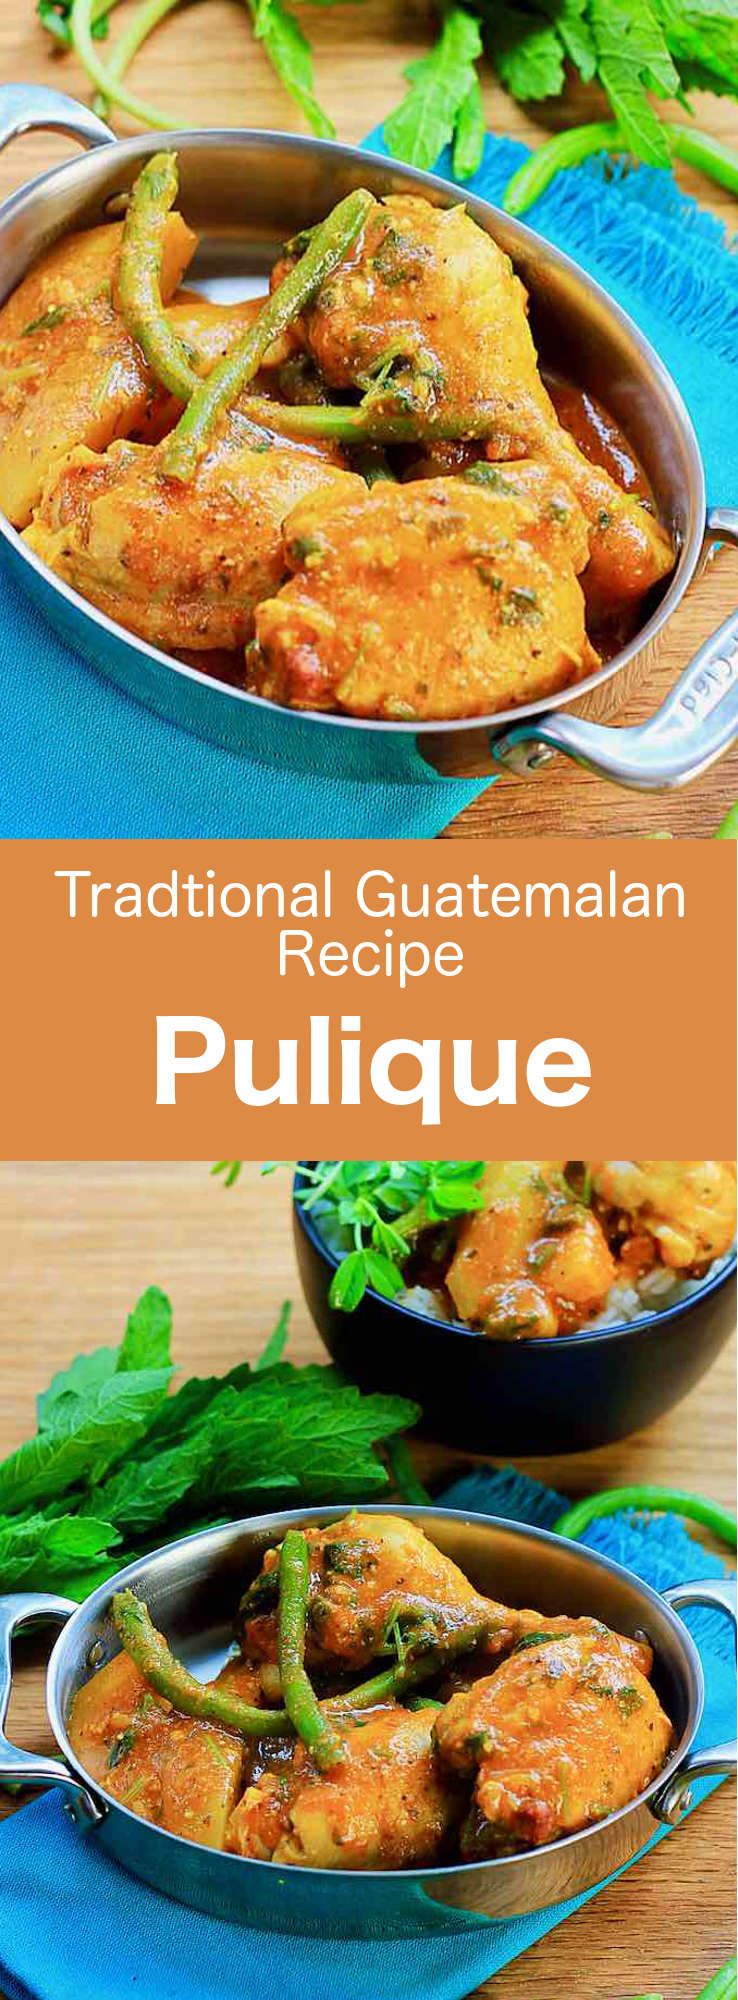 Pulique is a thick meat and vegetable stew, which can be made with chicken, beef or pork. It is known as one of the national dishes of Guatemala. #CentralAmericanCuisine #CentralAmericanRecipe #GuatemalanCuisine #GuatemalanRecipe #WorldCuisine #196flavors